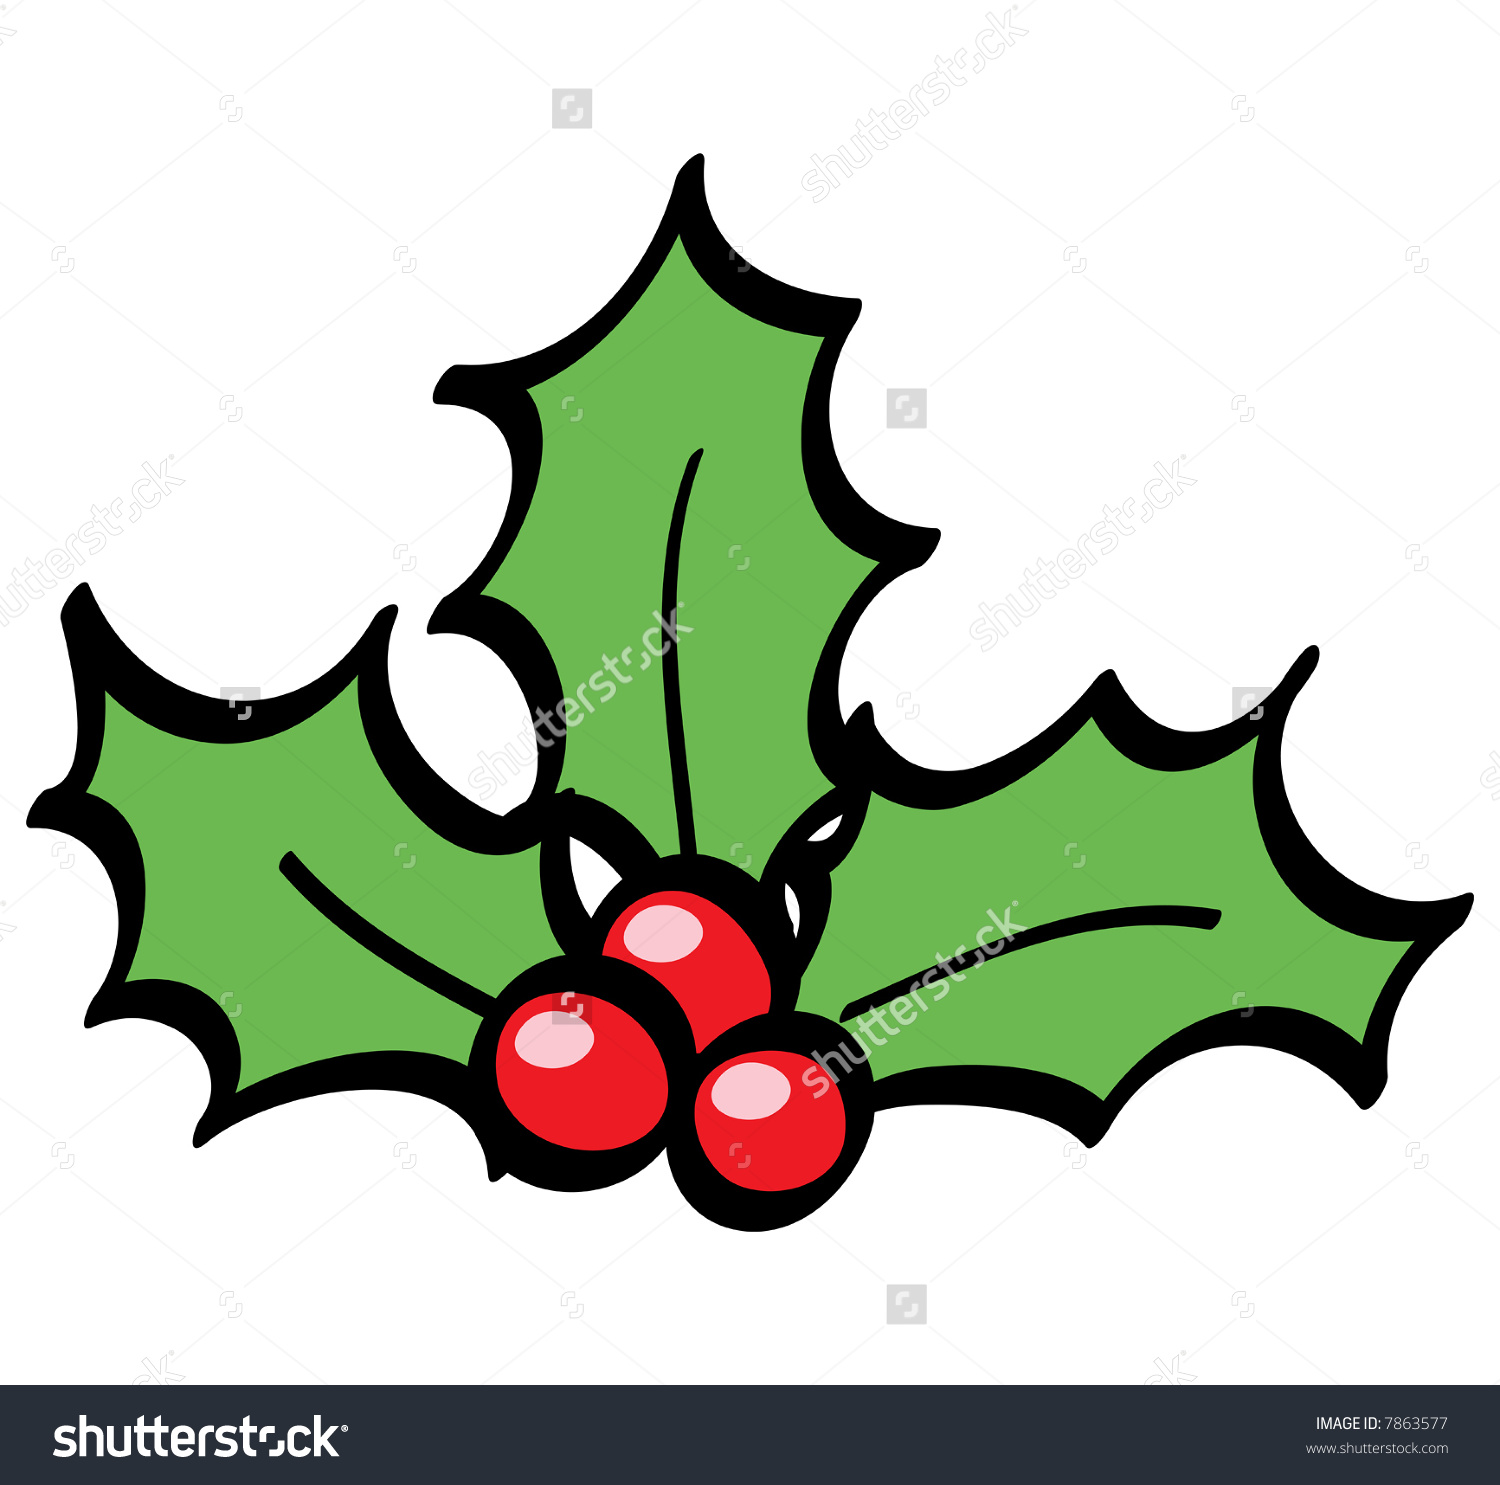 holly berries clipart clipground rope clip art images rope clip art images